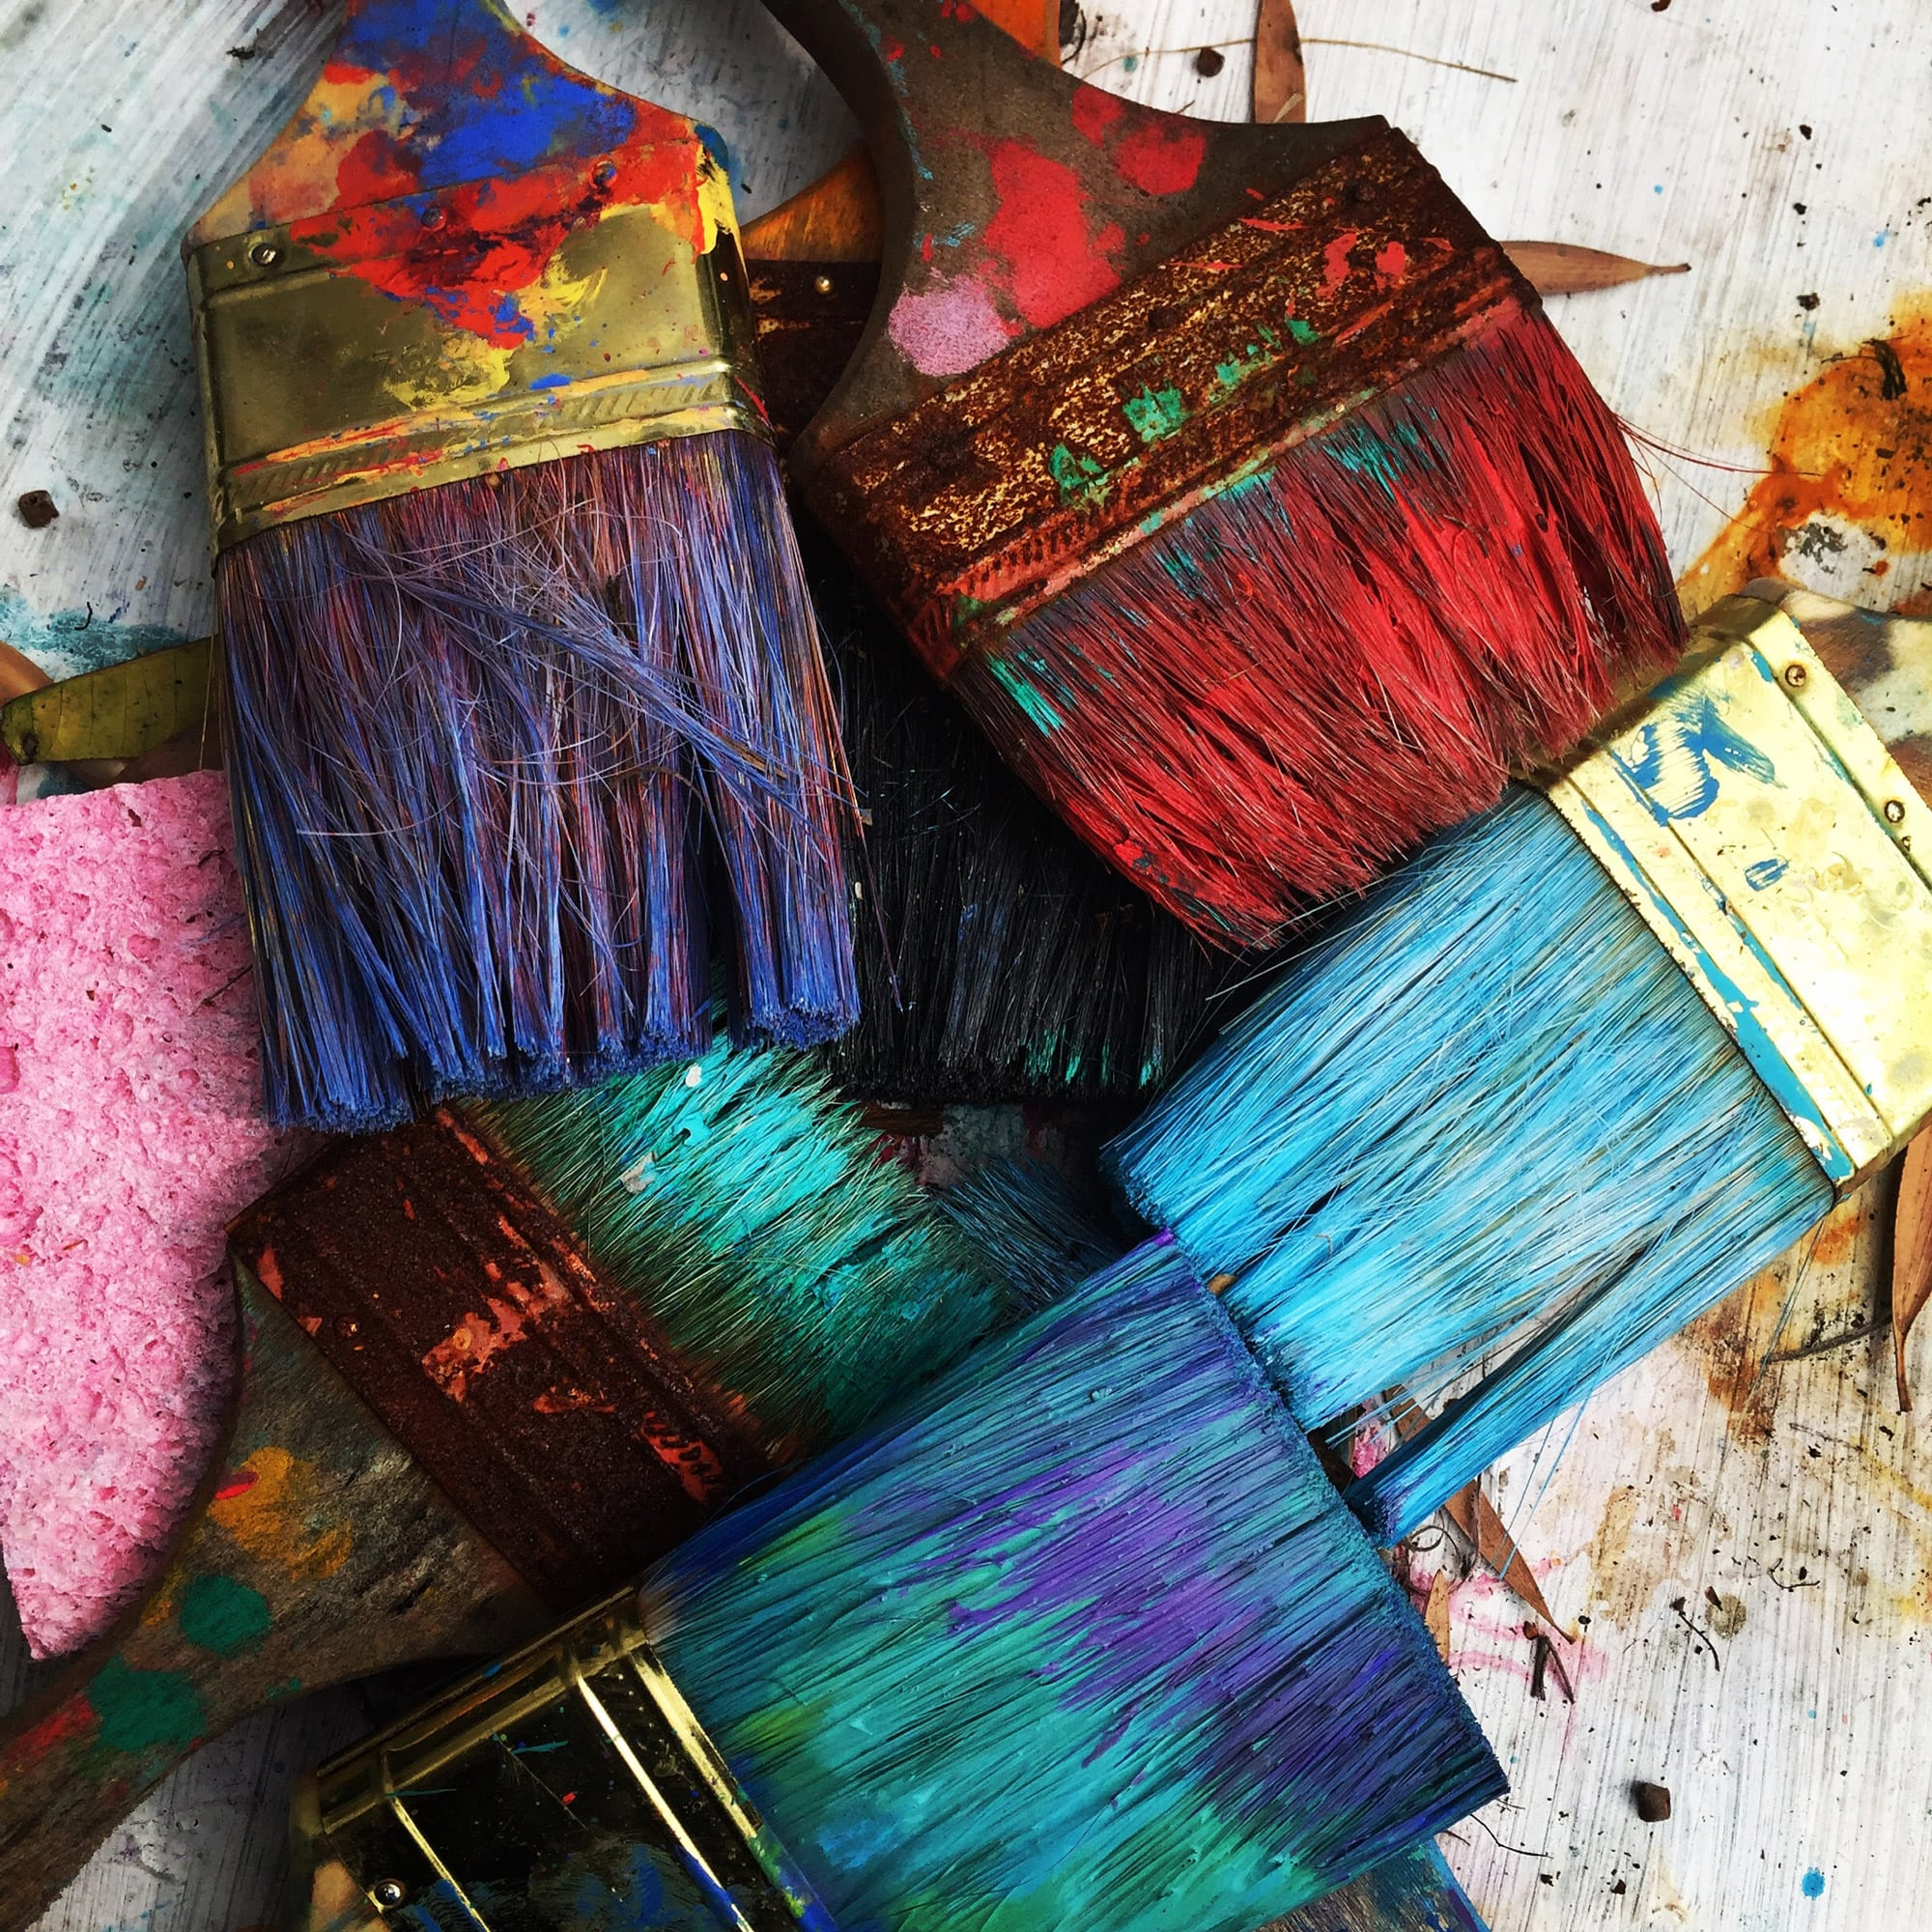 tuacahn-school-for-the-arts-brushes